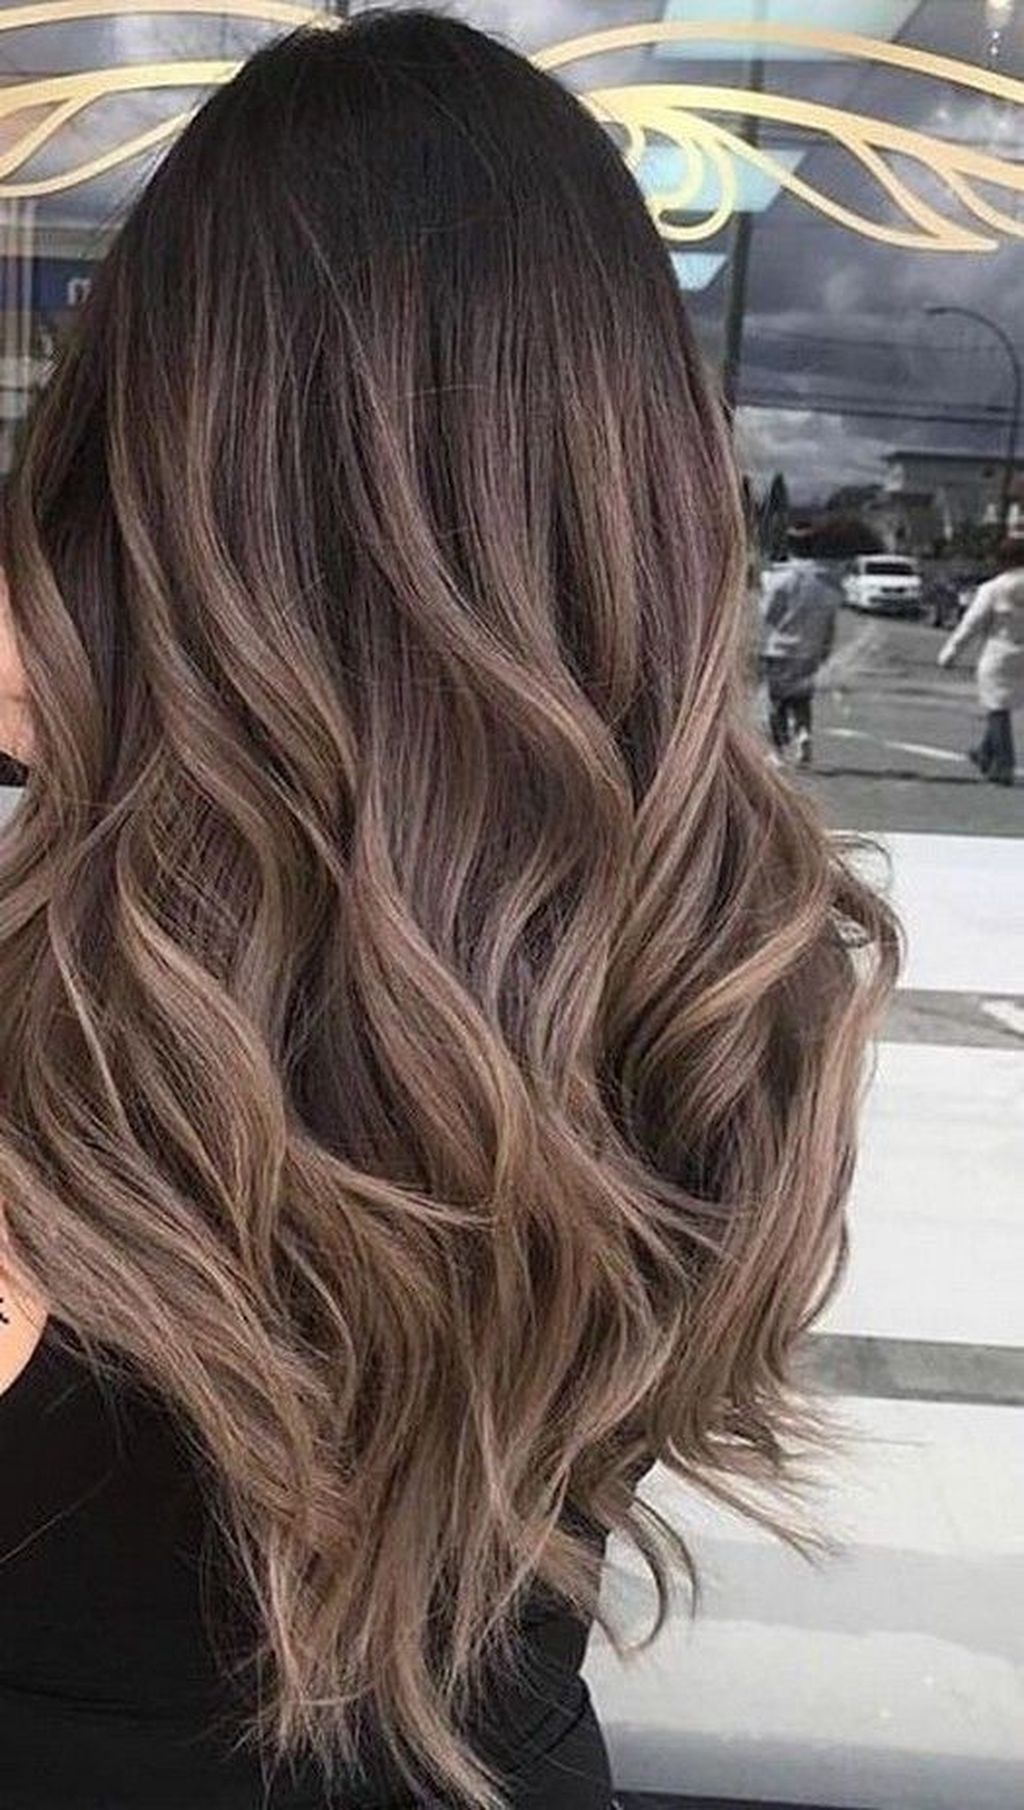 40 Cool Dark Brown Hair Color Ideas For Your Highlights In 2020 Brown Hair Balayage Brown Ombre Hair Brown Hair Shades